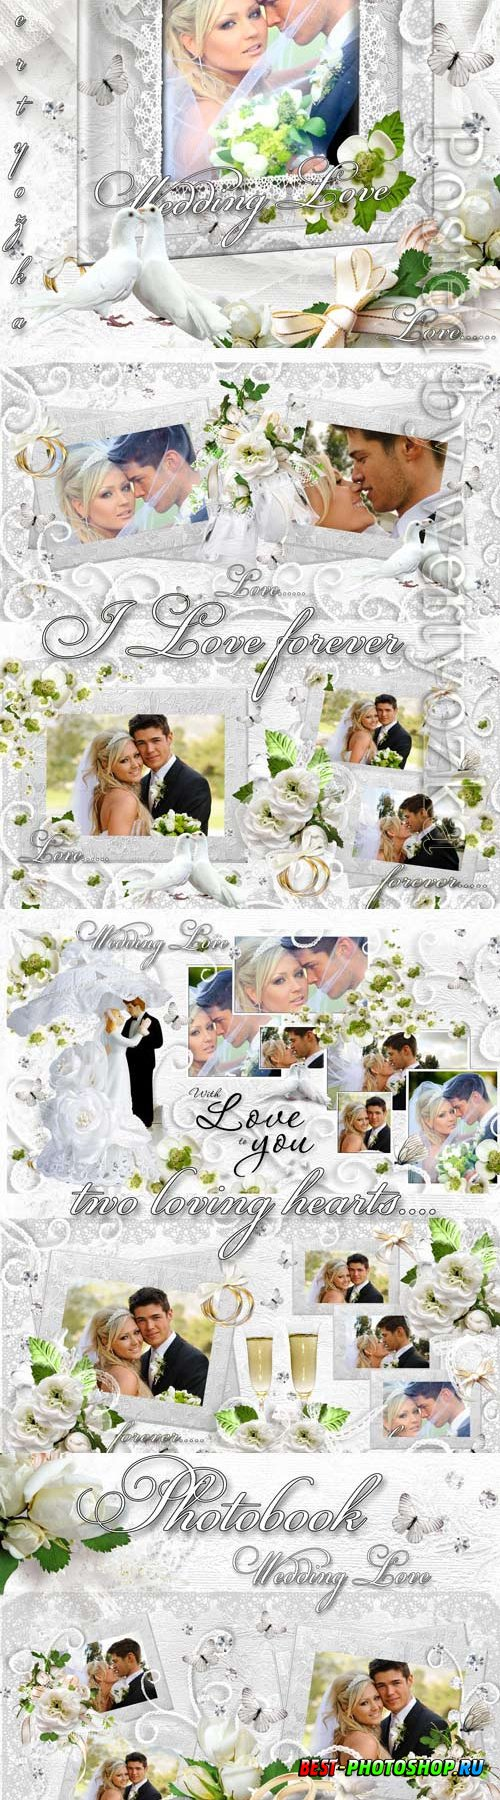 Wedding photo album with white flowers and doves